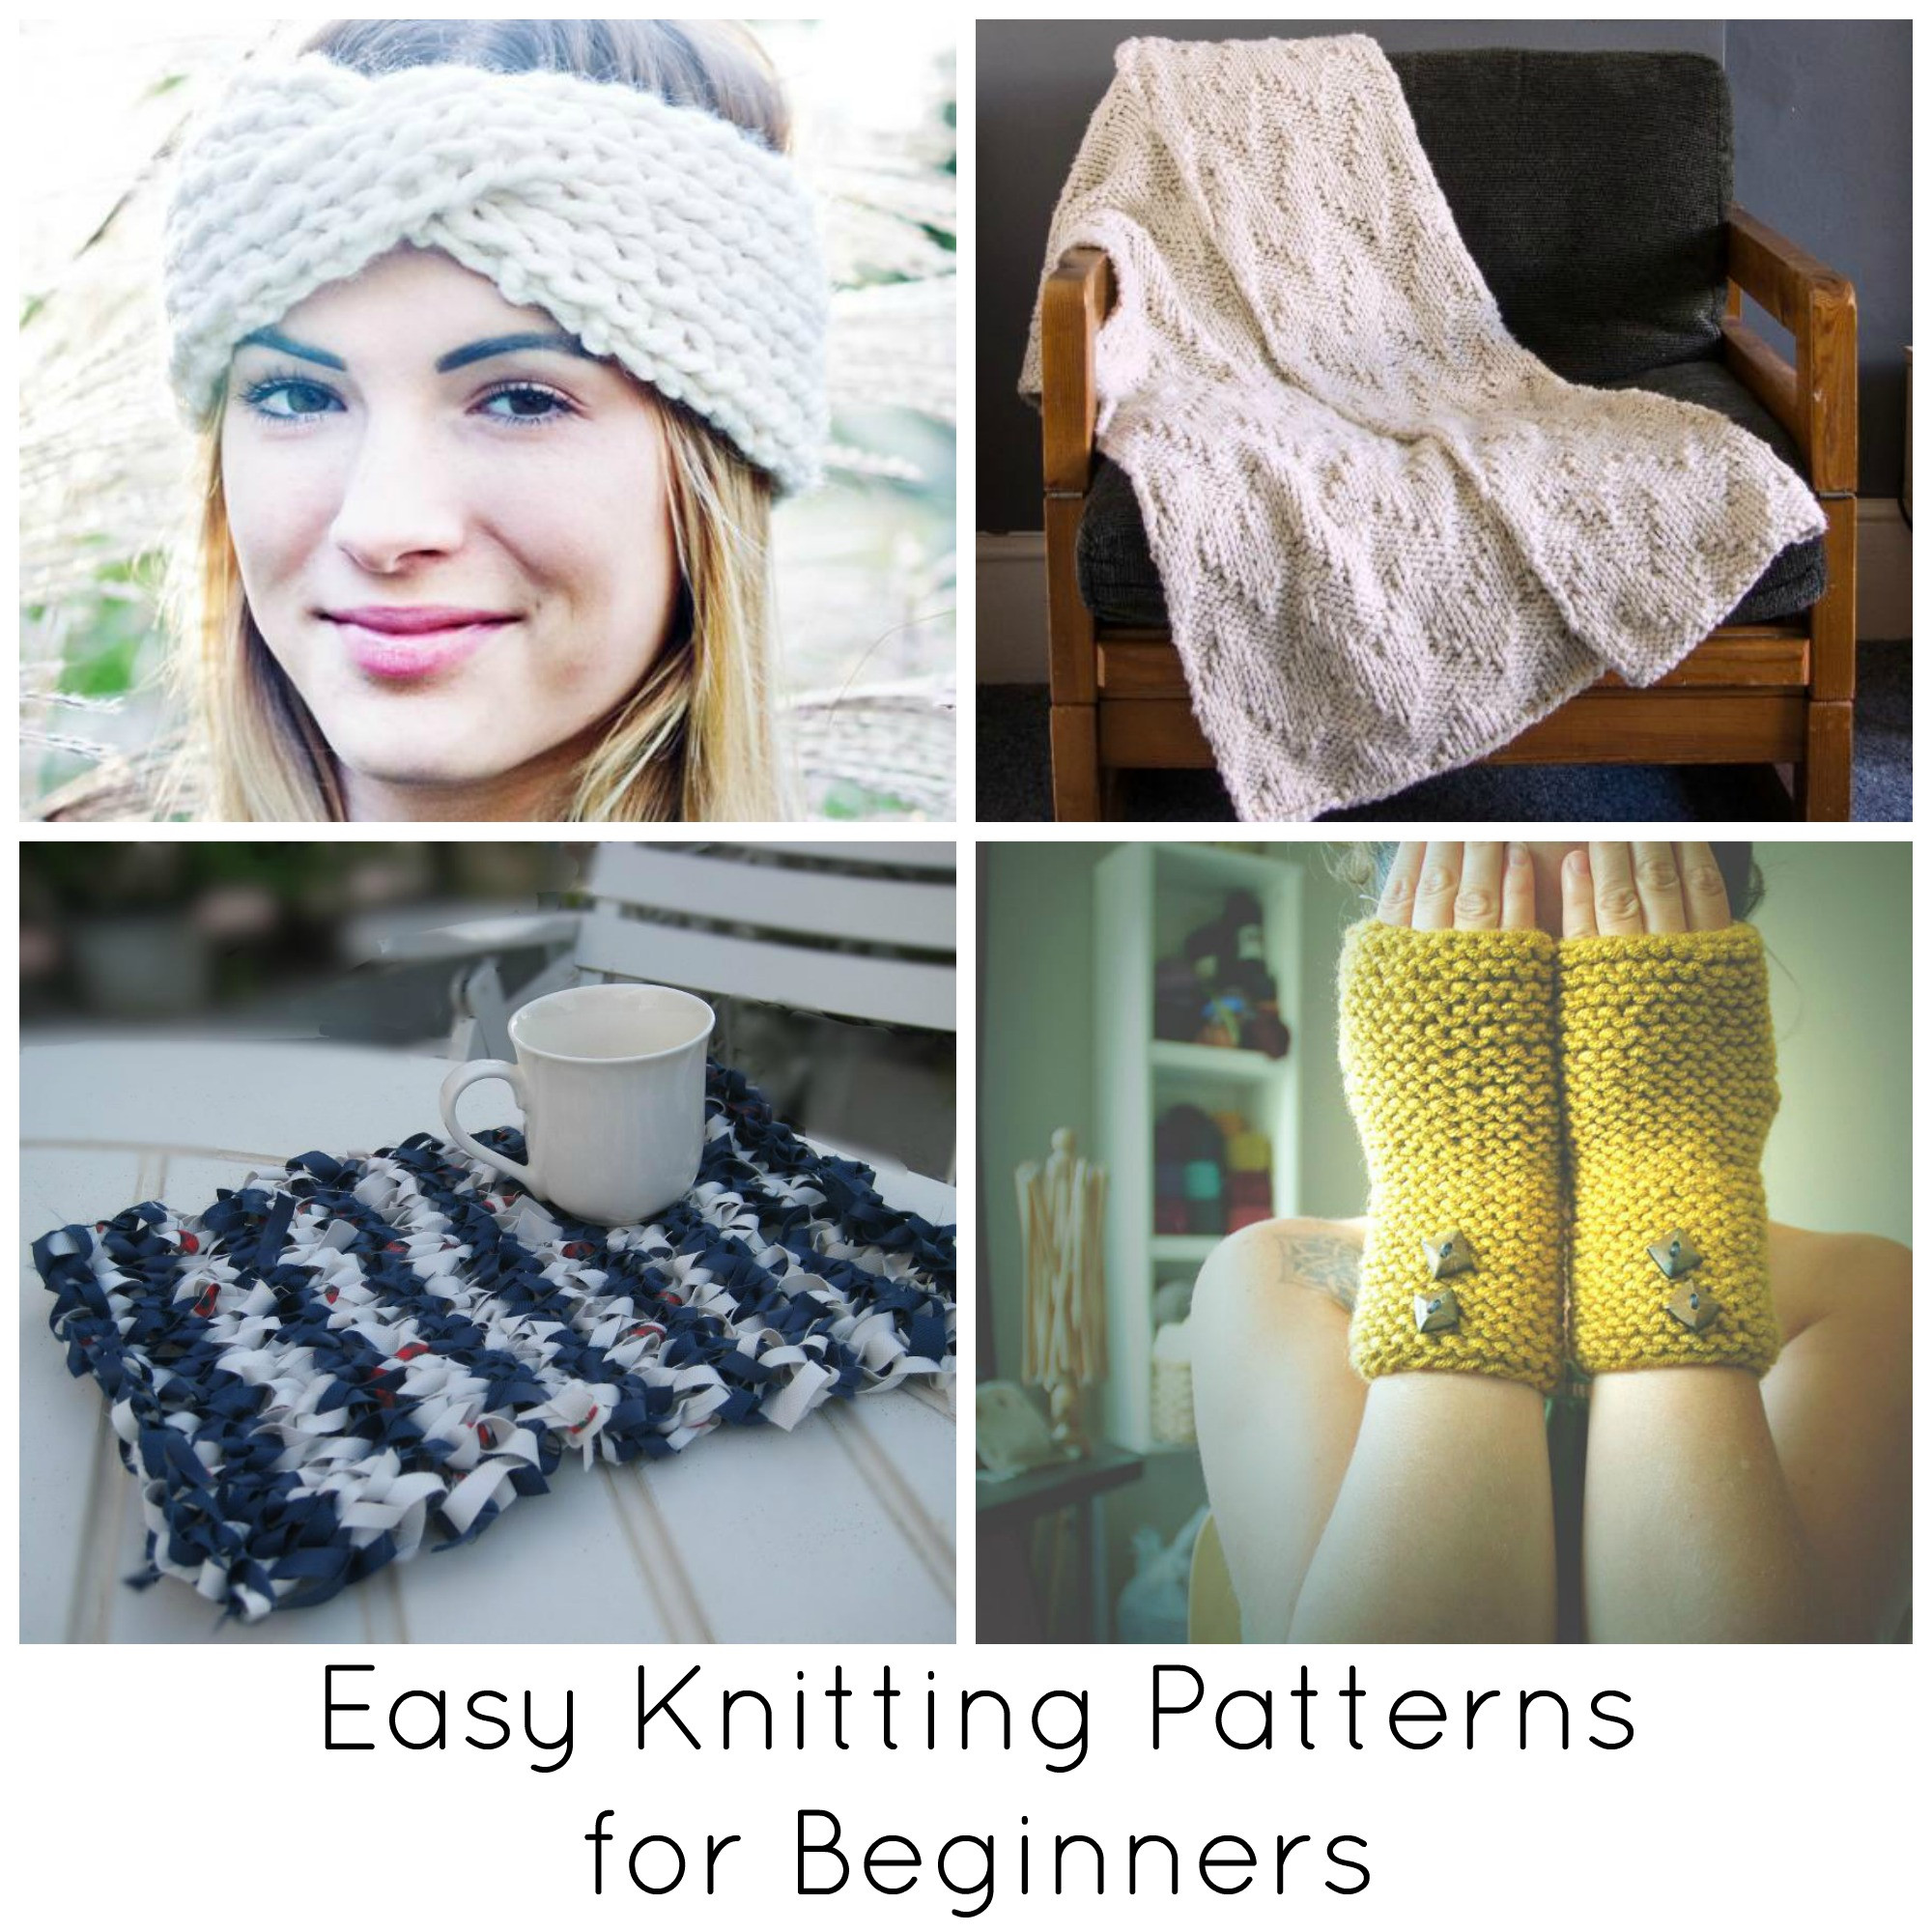 Beautiful Easy Knitting Patterns for Beginners Beyond Scarves Easy Knitting for Beginners Of Charming 43 Images Easy Knitting for Beginners